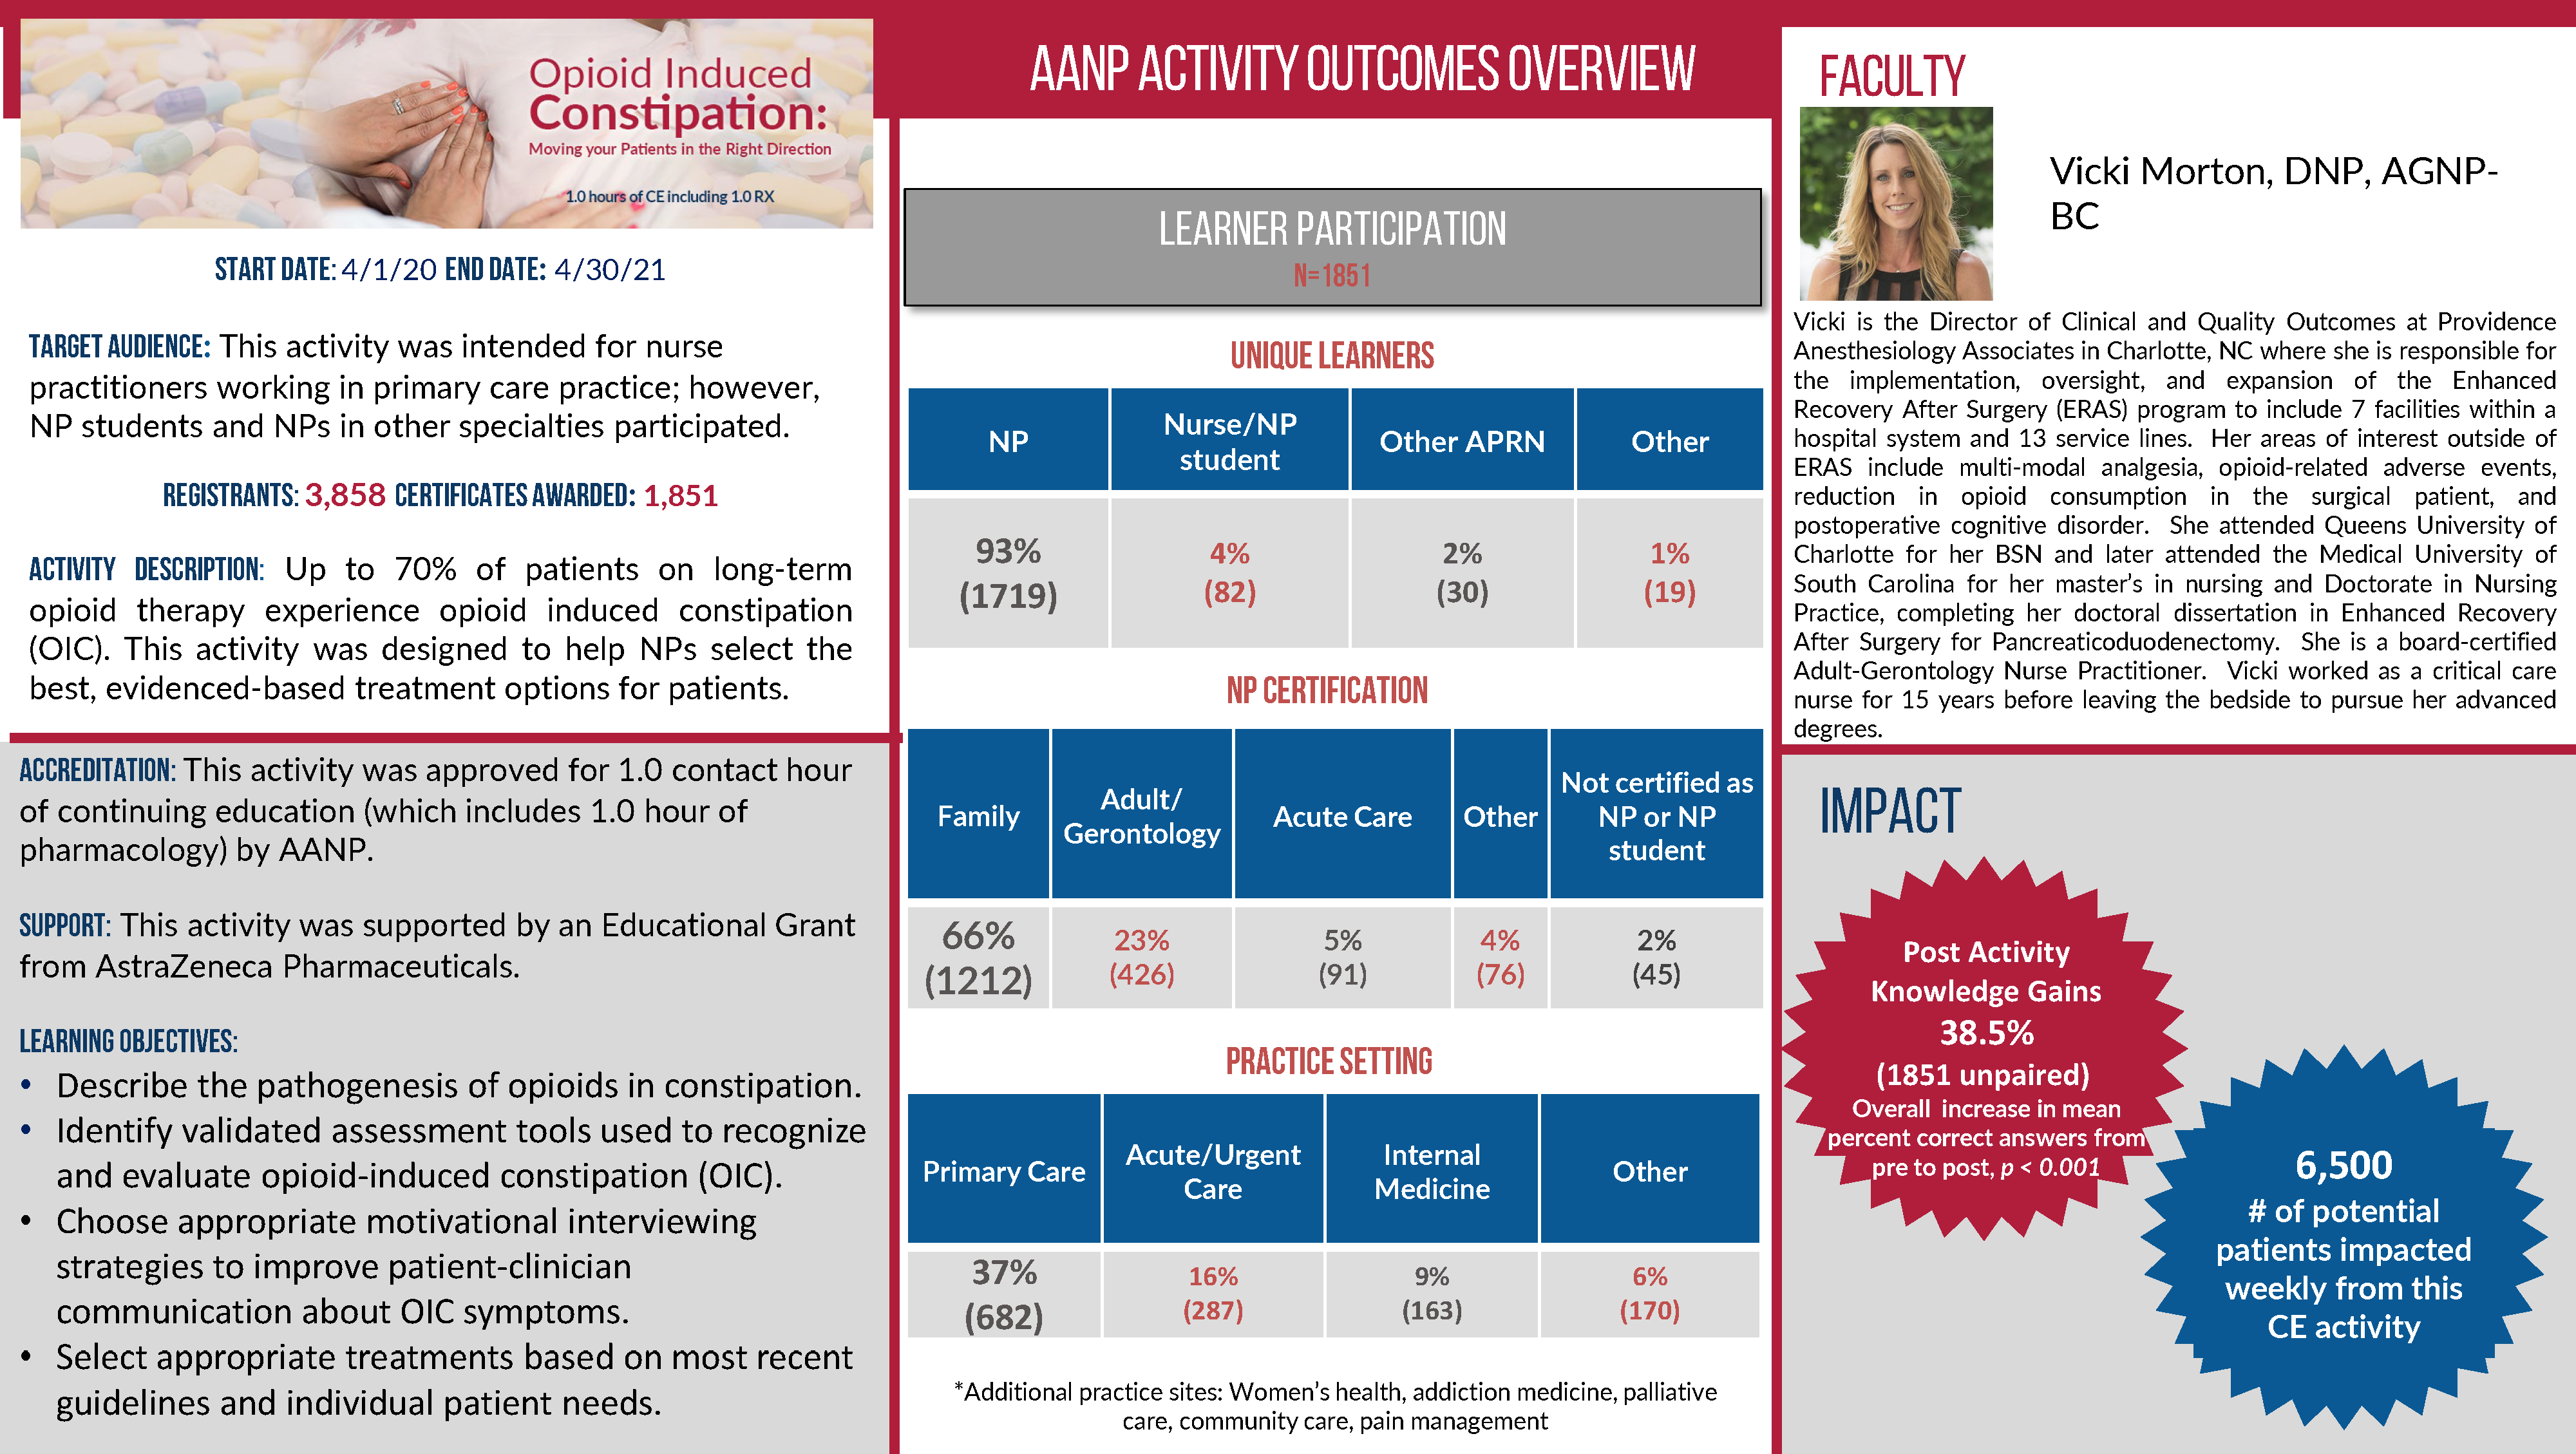 Poster showing outcomes from a Opioid Induced Constipation educational activity